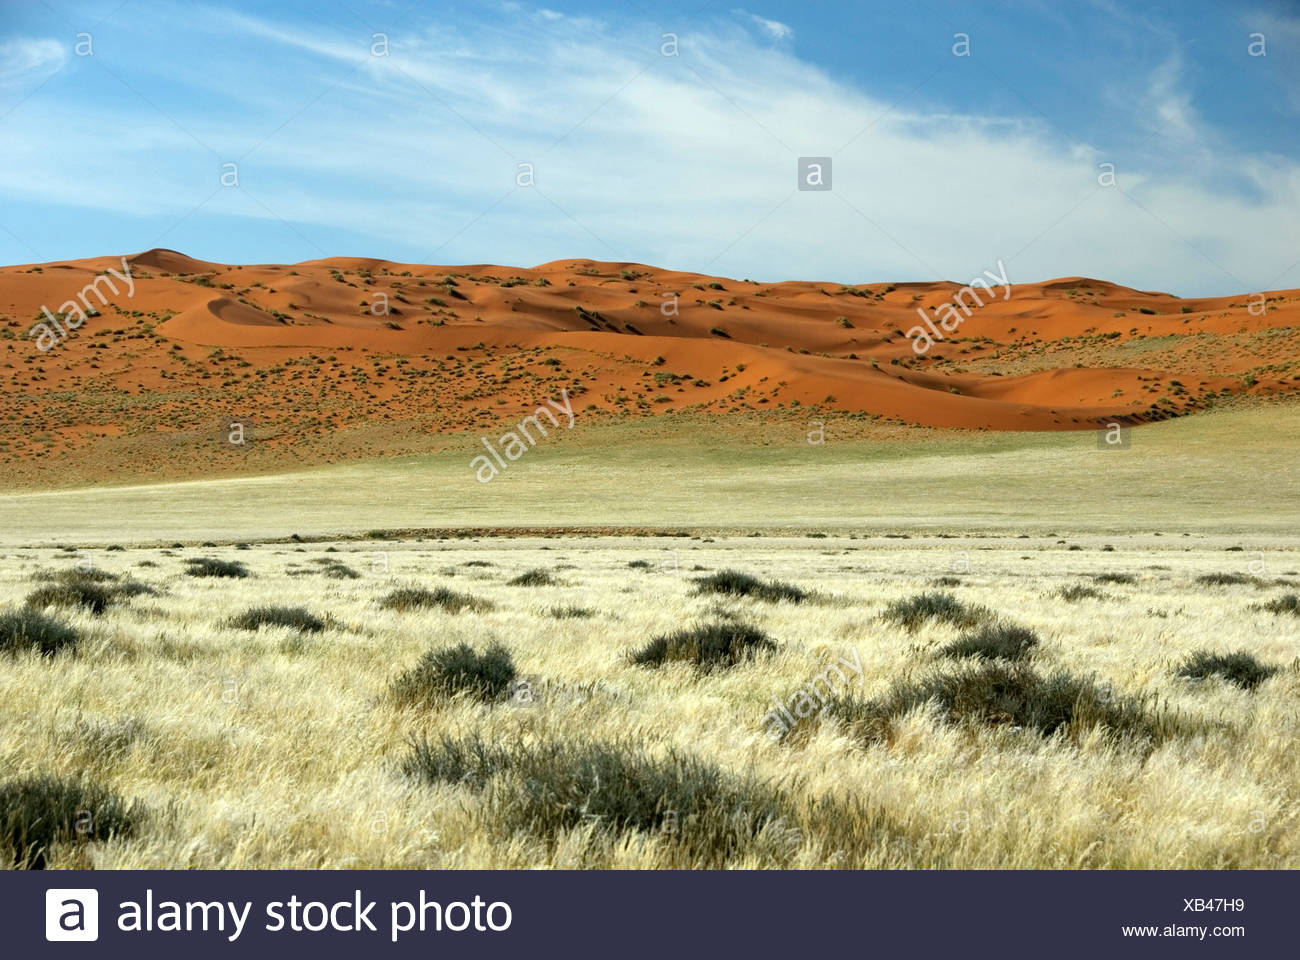 red dunes in the desert, Namibia, D707 - Stock Image